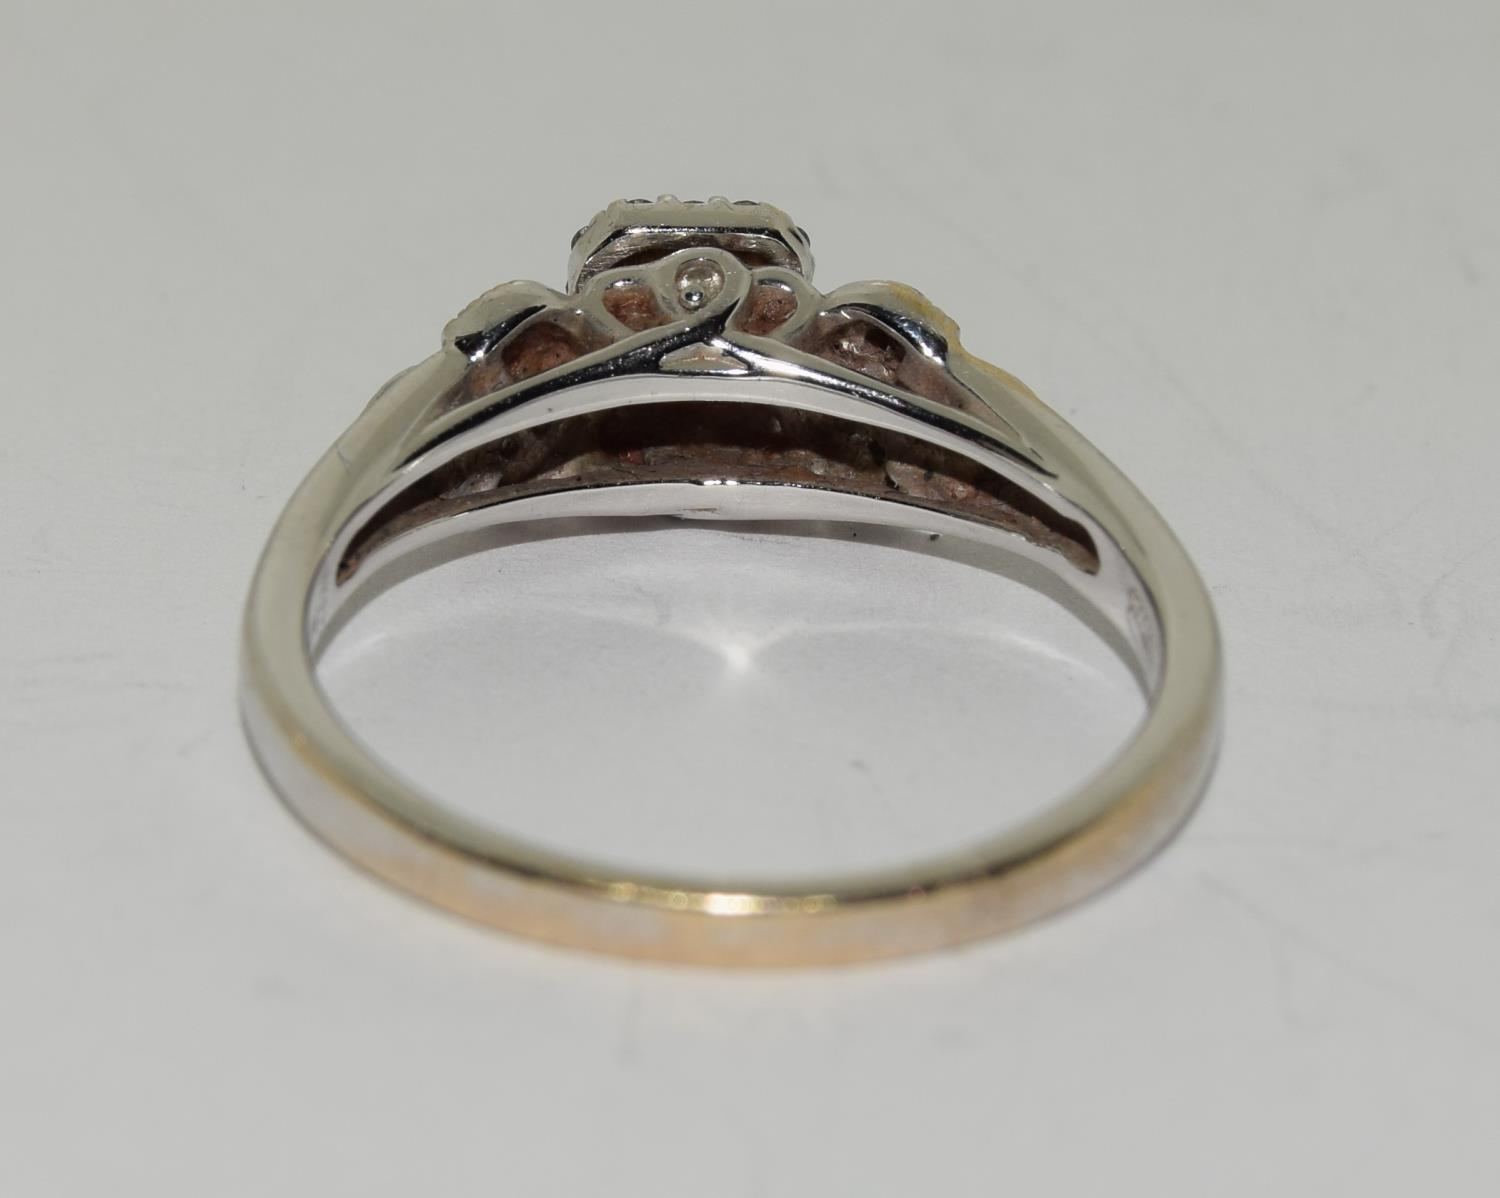 18ct white gold ladies diamond ring with certificat and original boxes from Emmy of London size O - Image 5 of 5